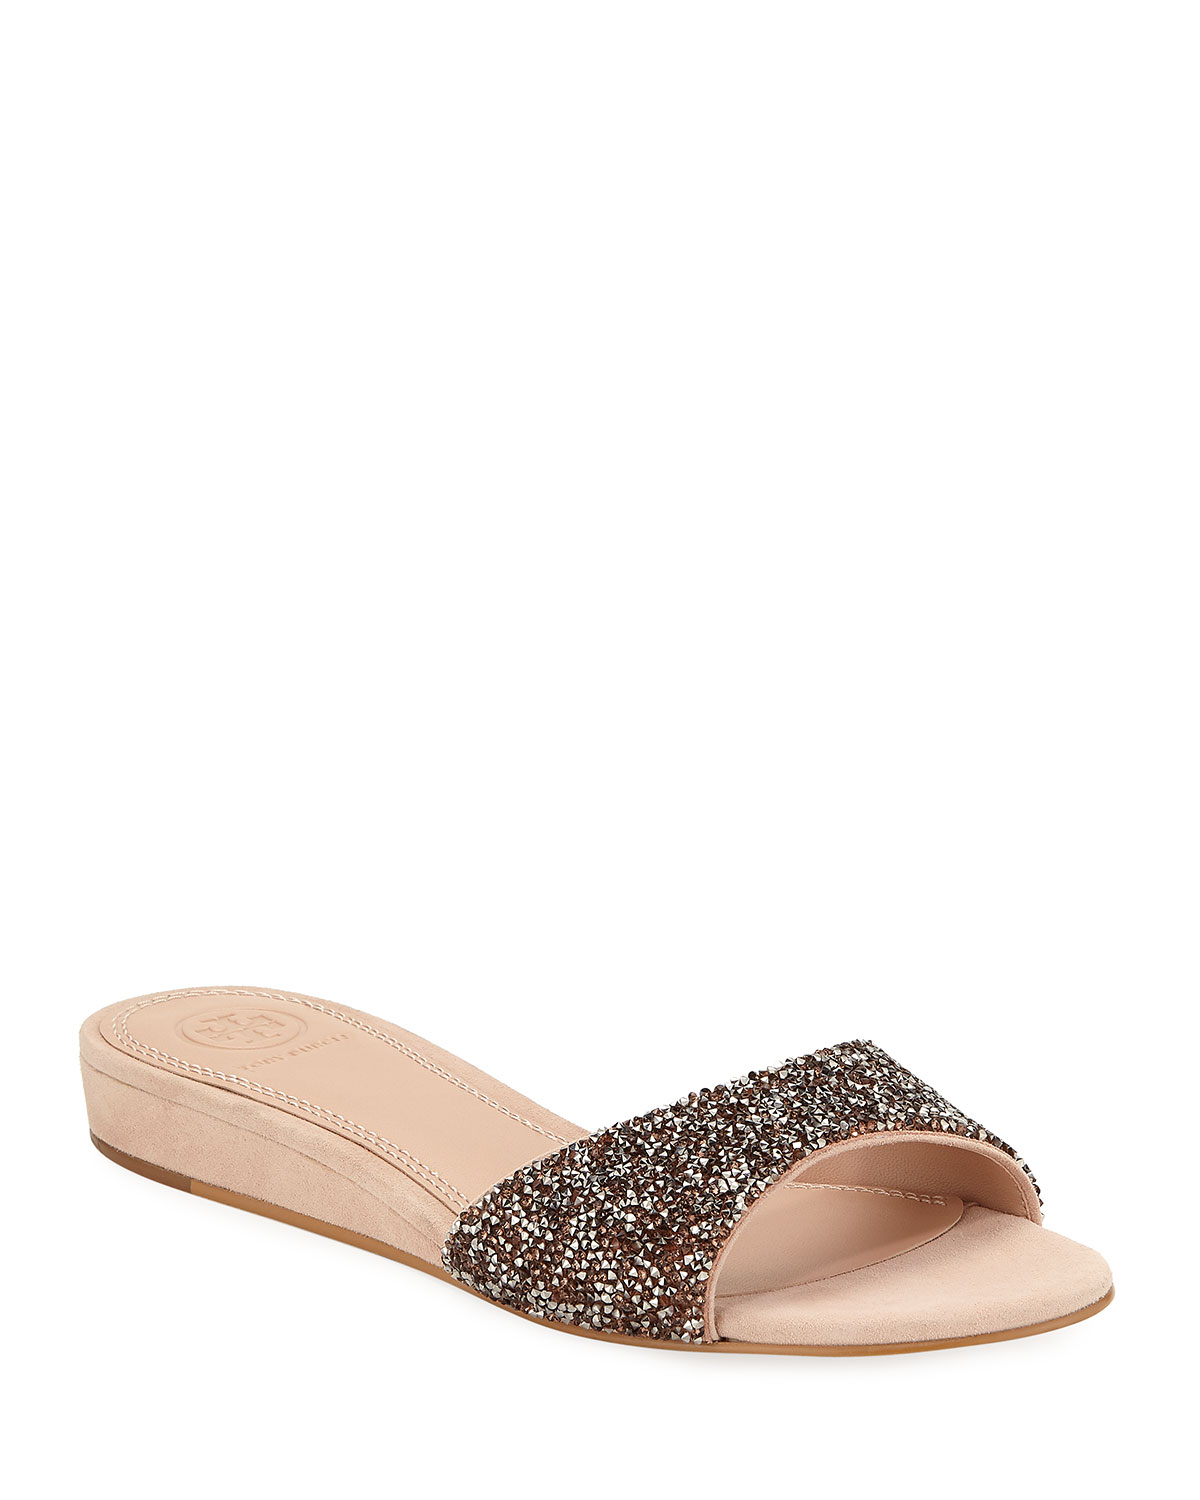 d807a906e1c0 Tory Burch Elodie Glitter Wedge Sandals